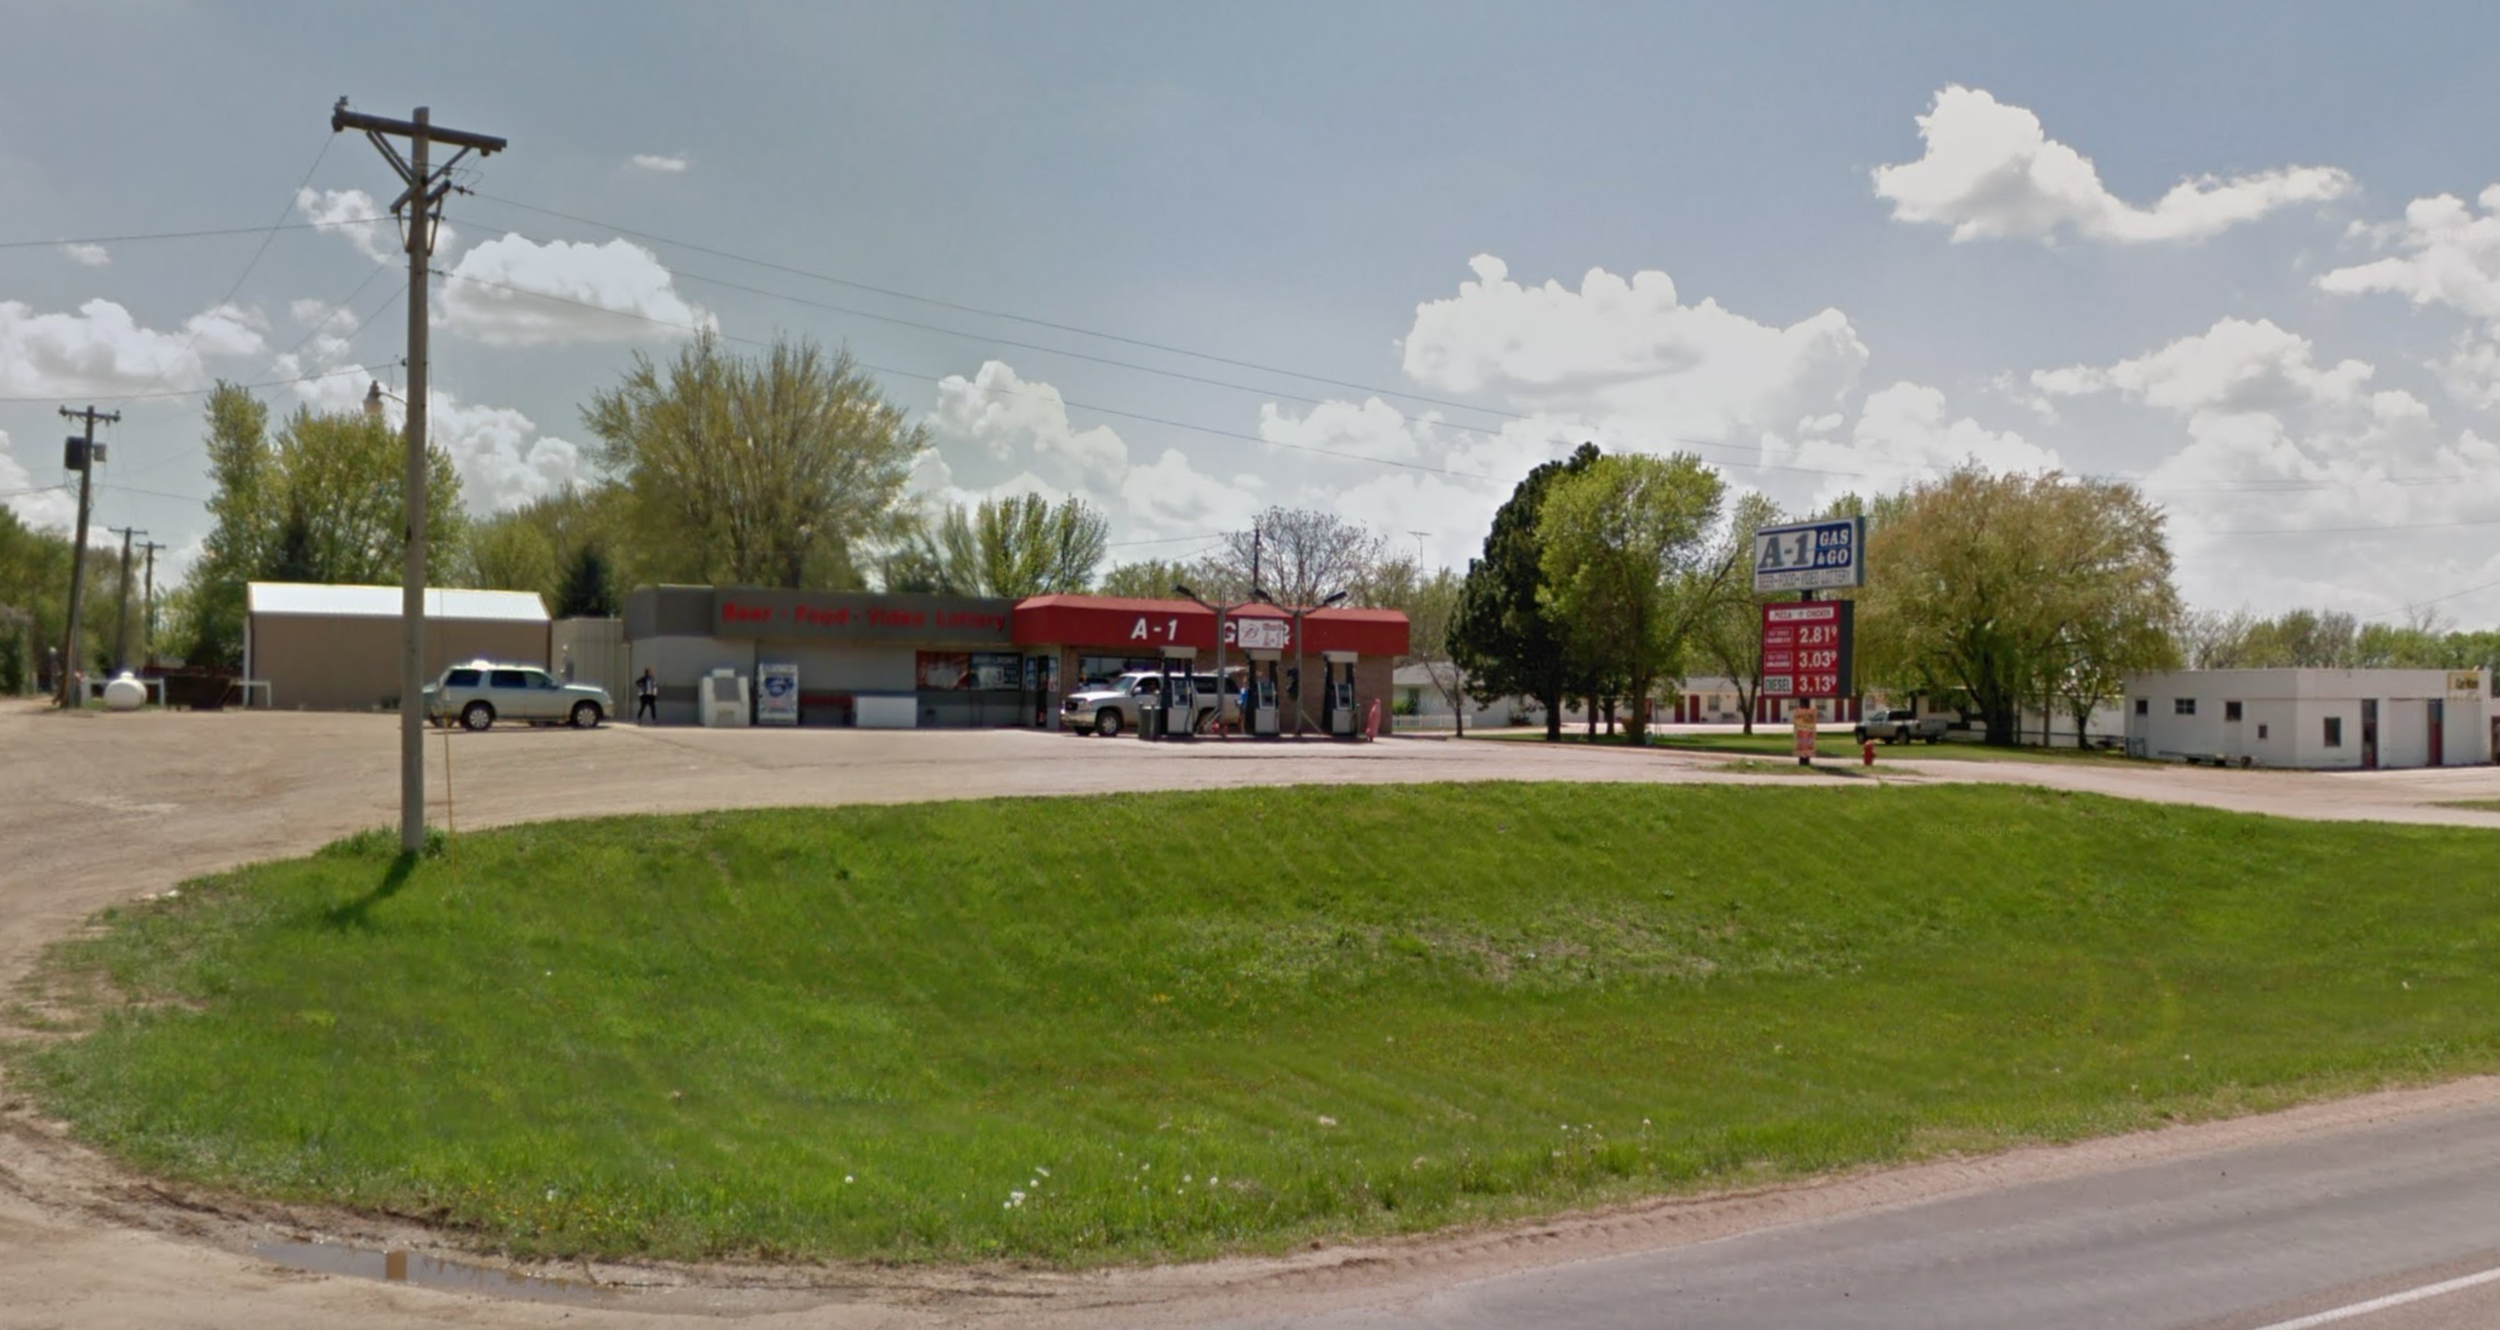 A-1 Gas & Go  West Hwy 50 Avon, SD 57315 (605) 286-3500  Owners: Mike and Jamie Wren  Beer | Food | Video Lottery Open: 6AM | 7 Days a week